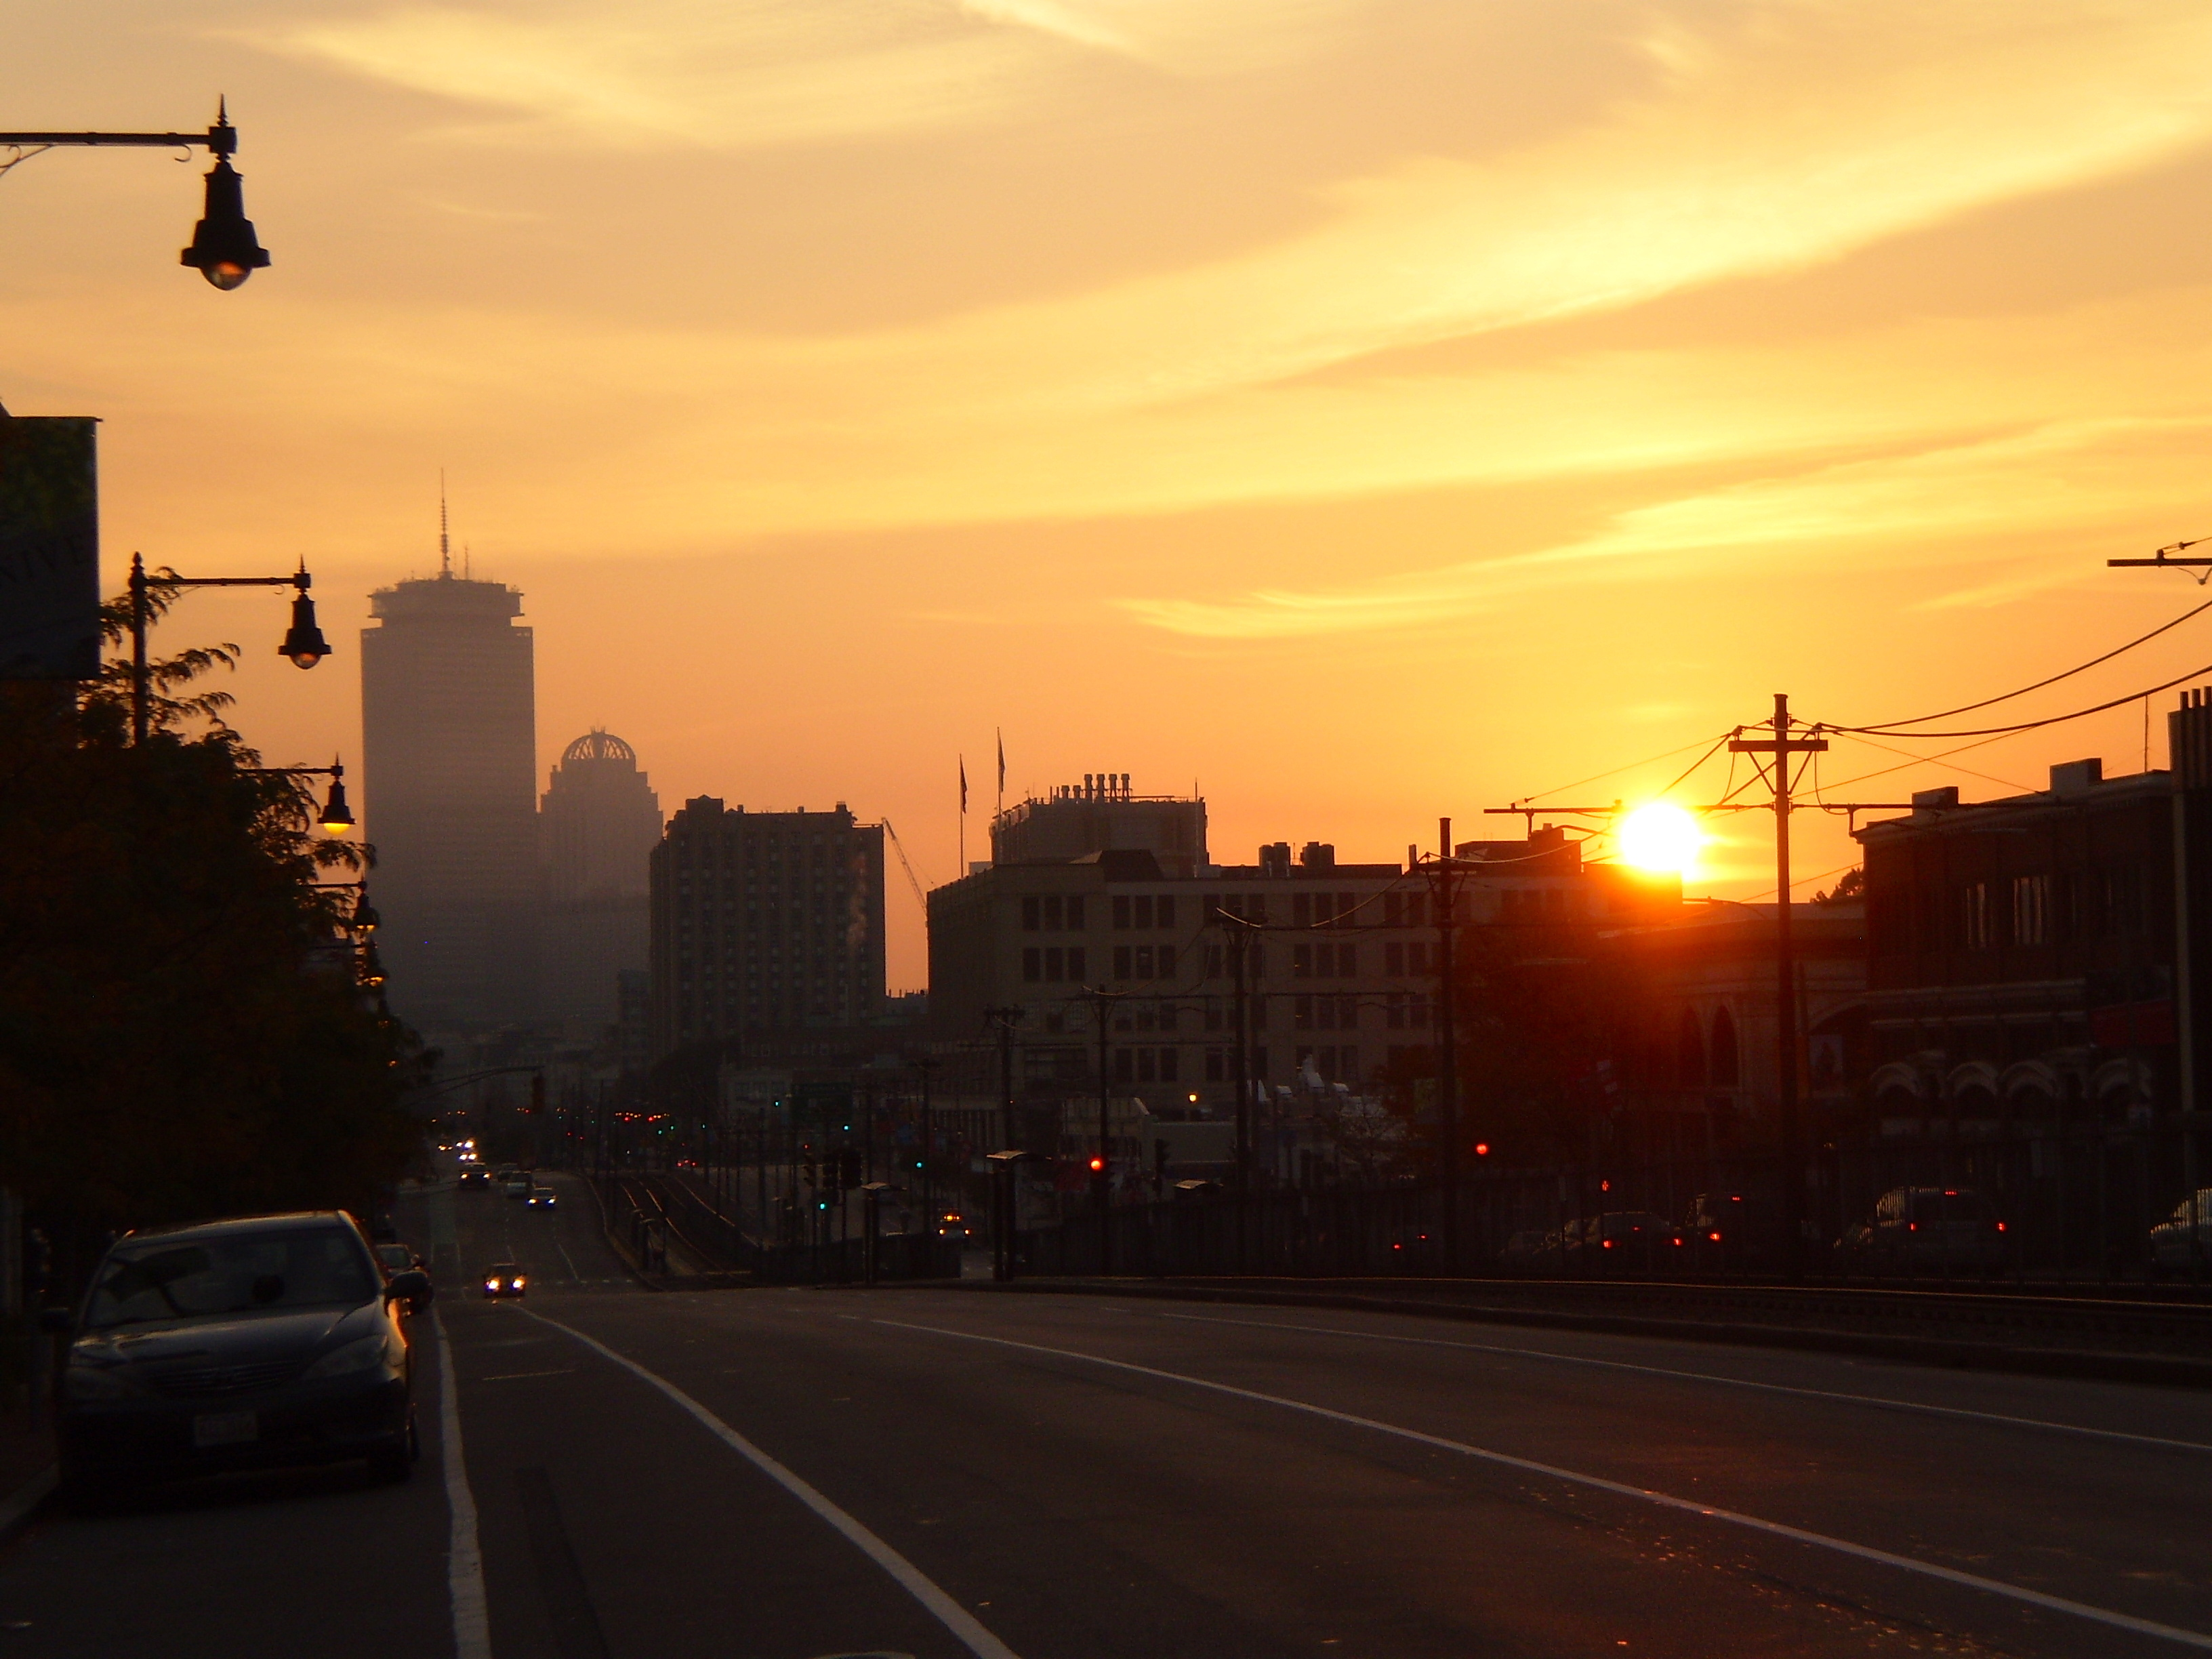 Sunrise on Comm Ave.